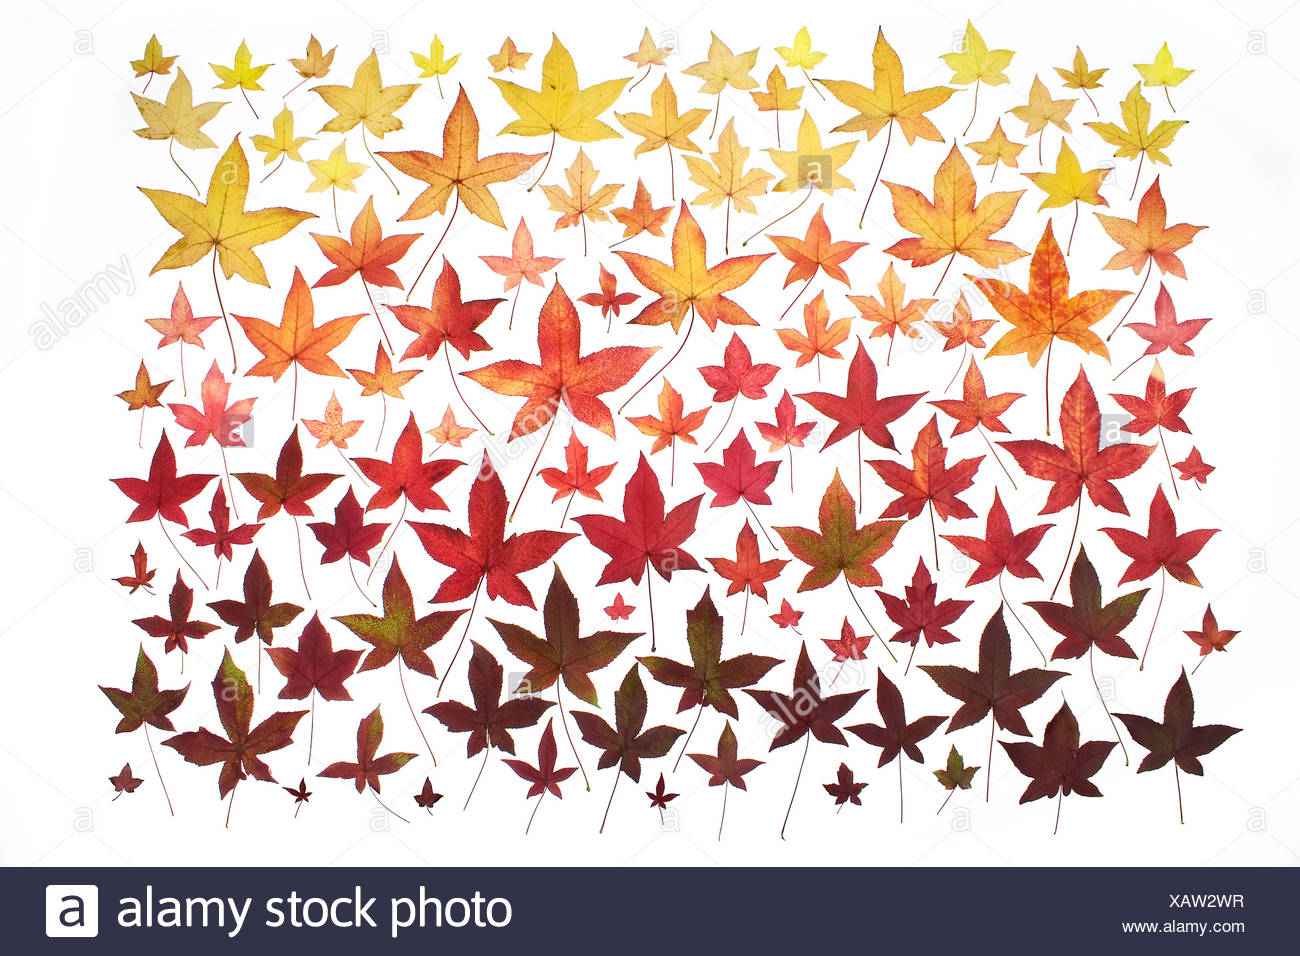 Collection of the different autumn coloured leaves from a single Sweetgum Tree (Liquidambar) - Stock Image